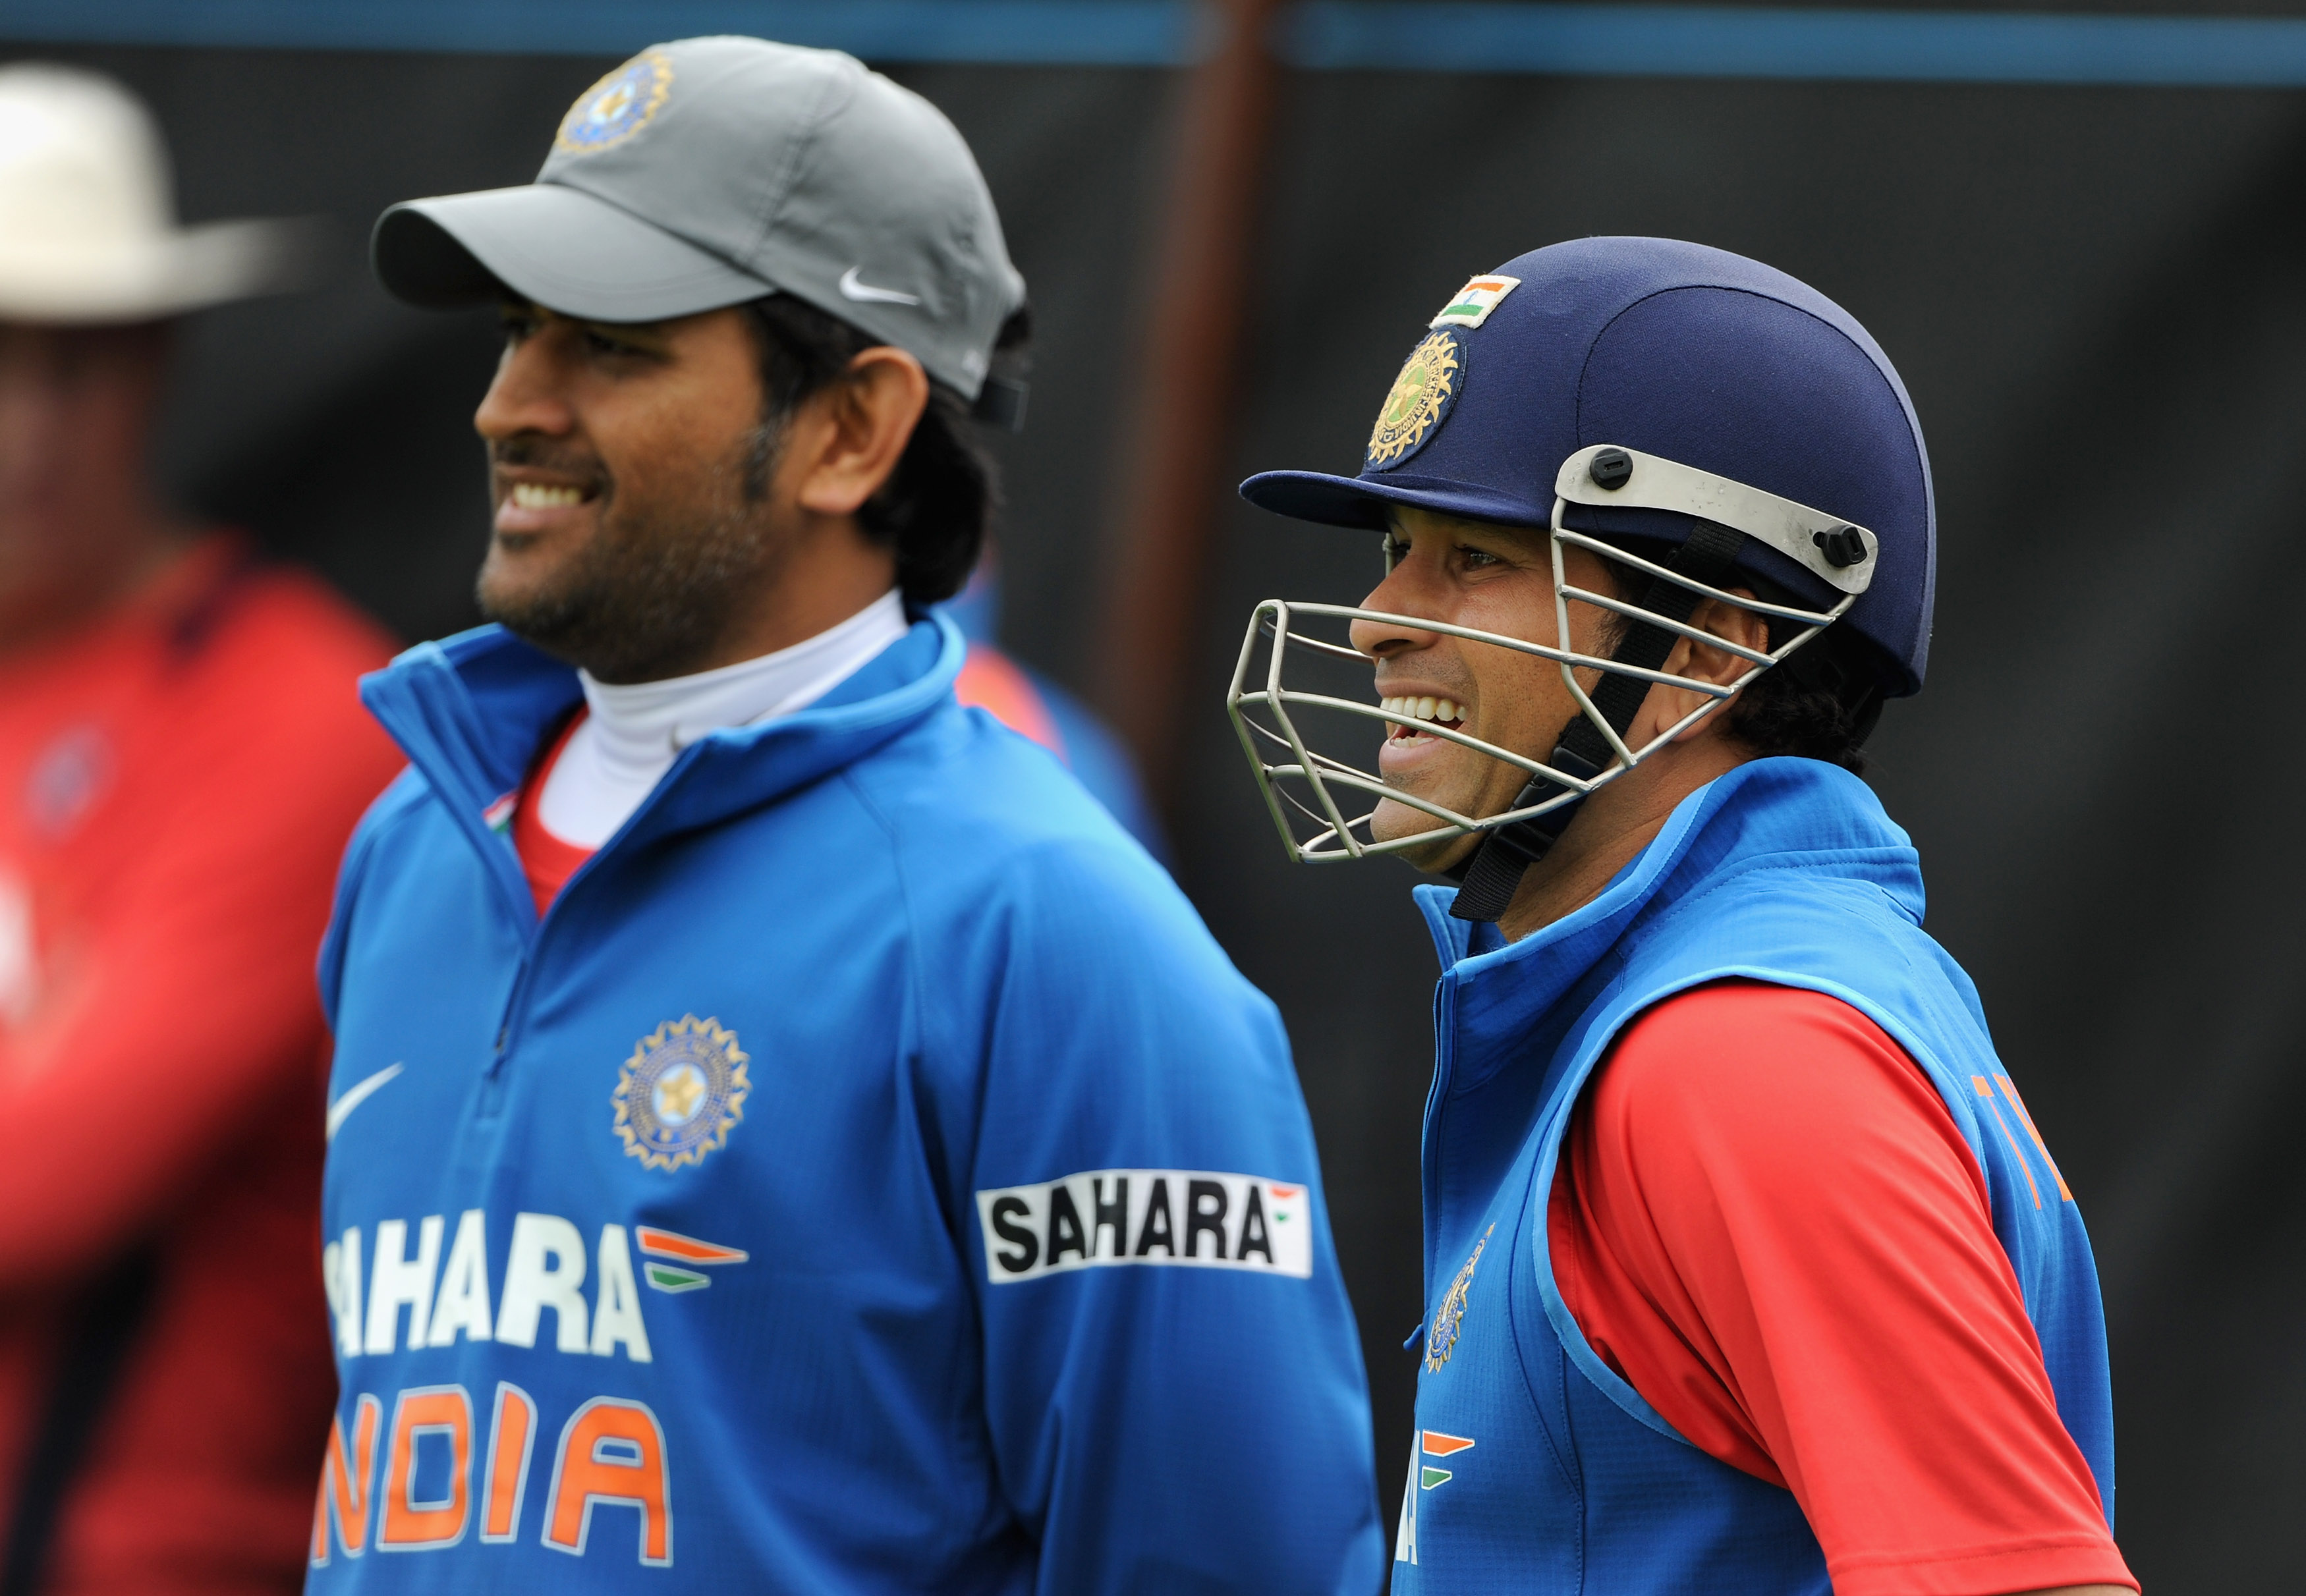 stunning thala dhoni and master sachine beautiful smiling look togather still background desktop mobile free hd pictures